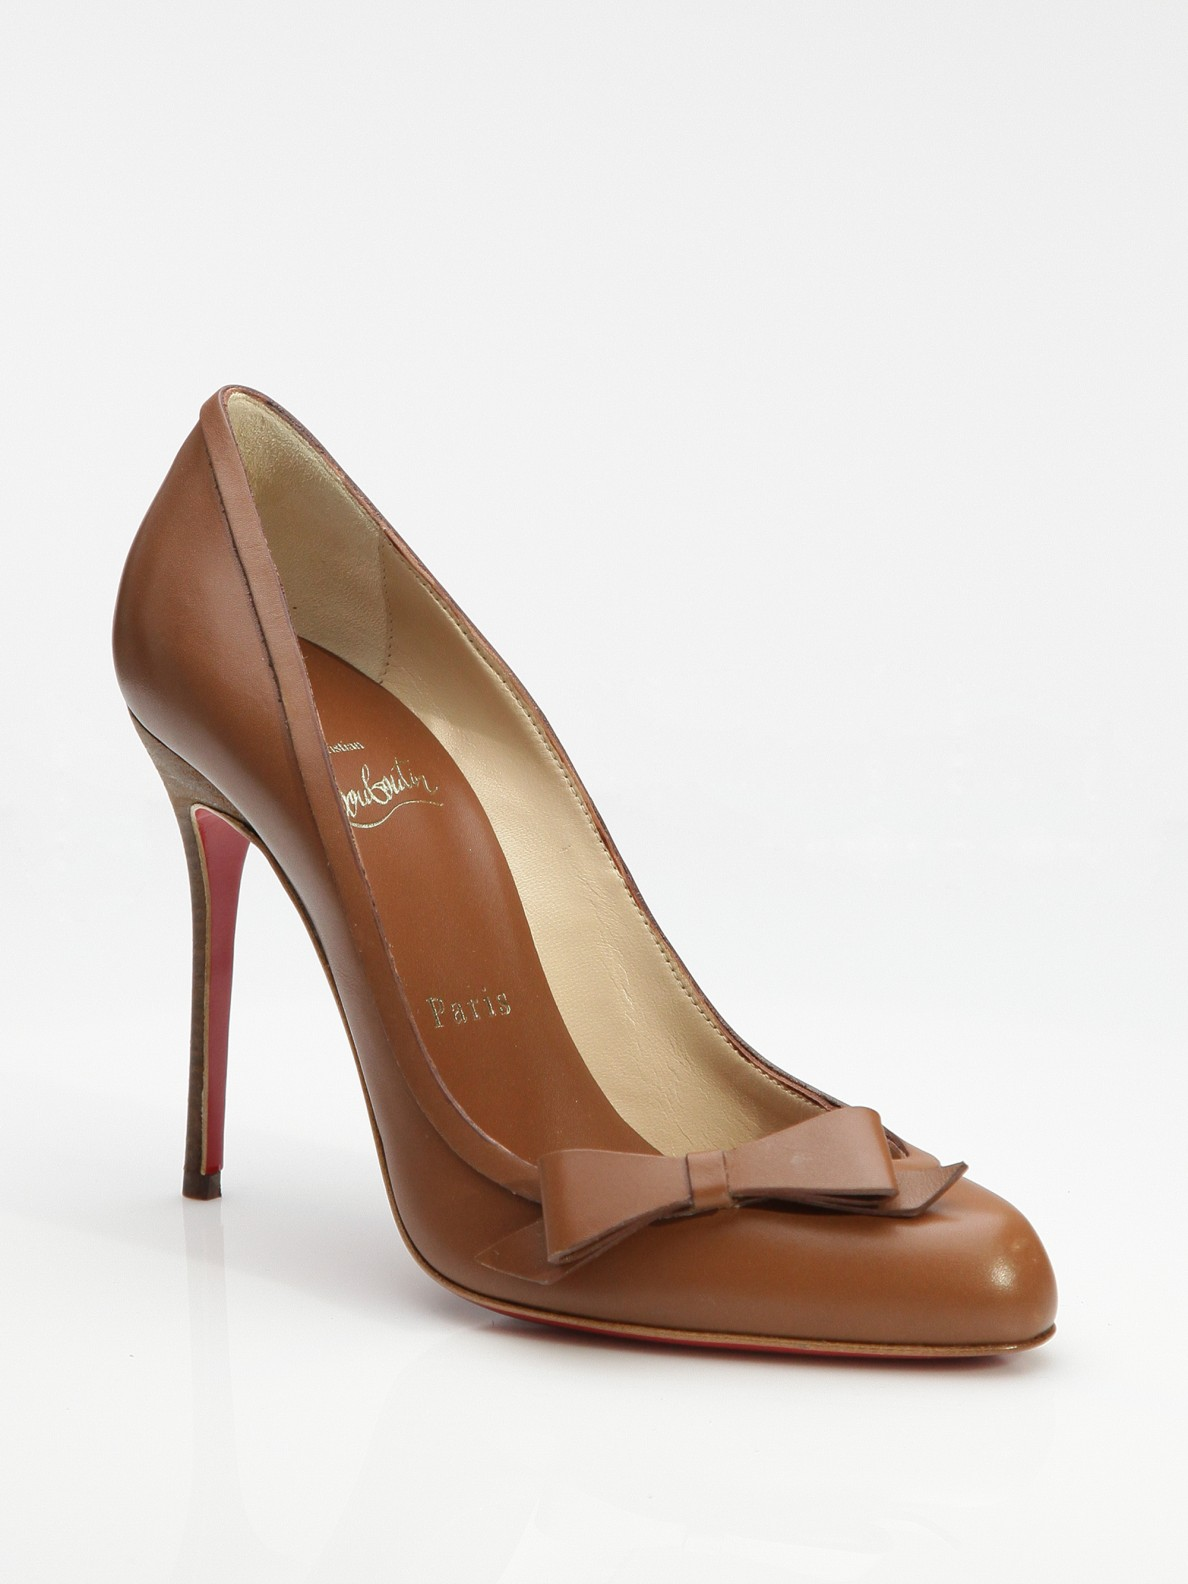 Lyst Christian Louboutin Beauty Bow Pumps In Brown